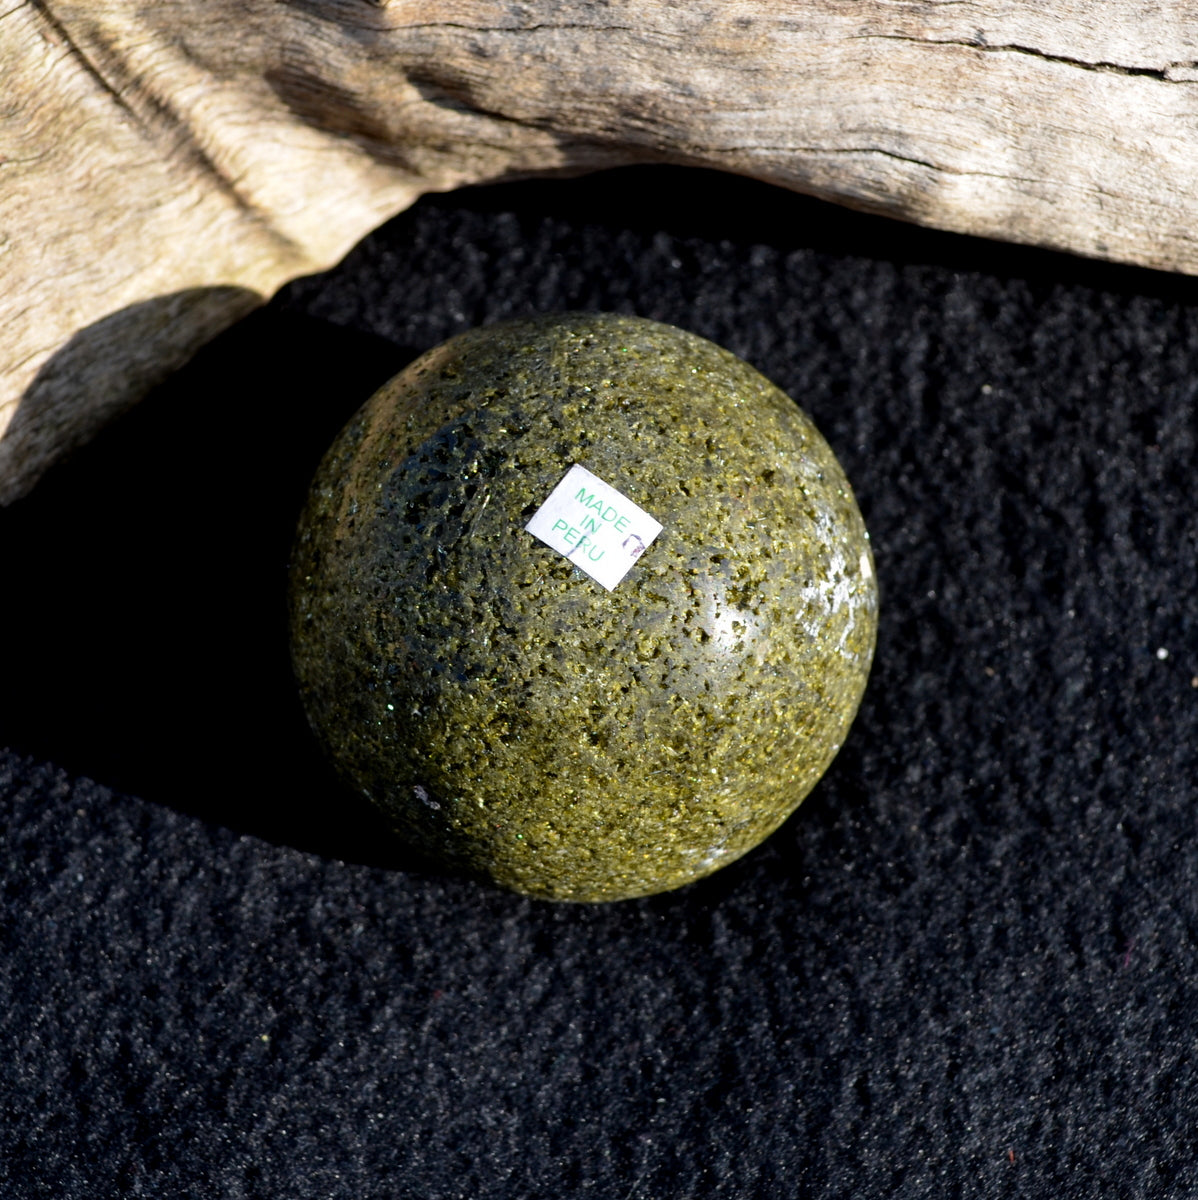 Rare Epidote Sphere - Nature Healing Heart Manifesting - Shop Now at Illiom Crystals - Afterpay Available